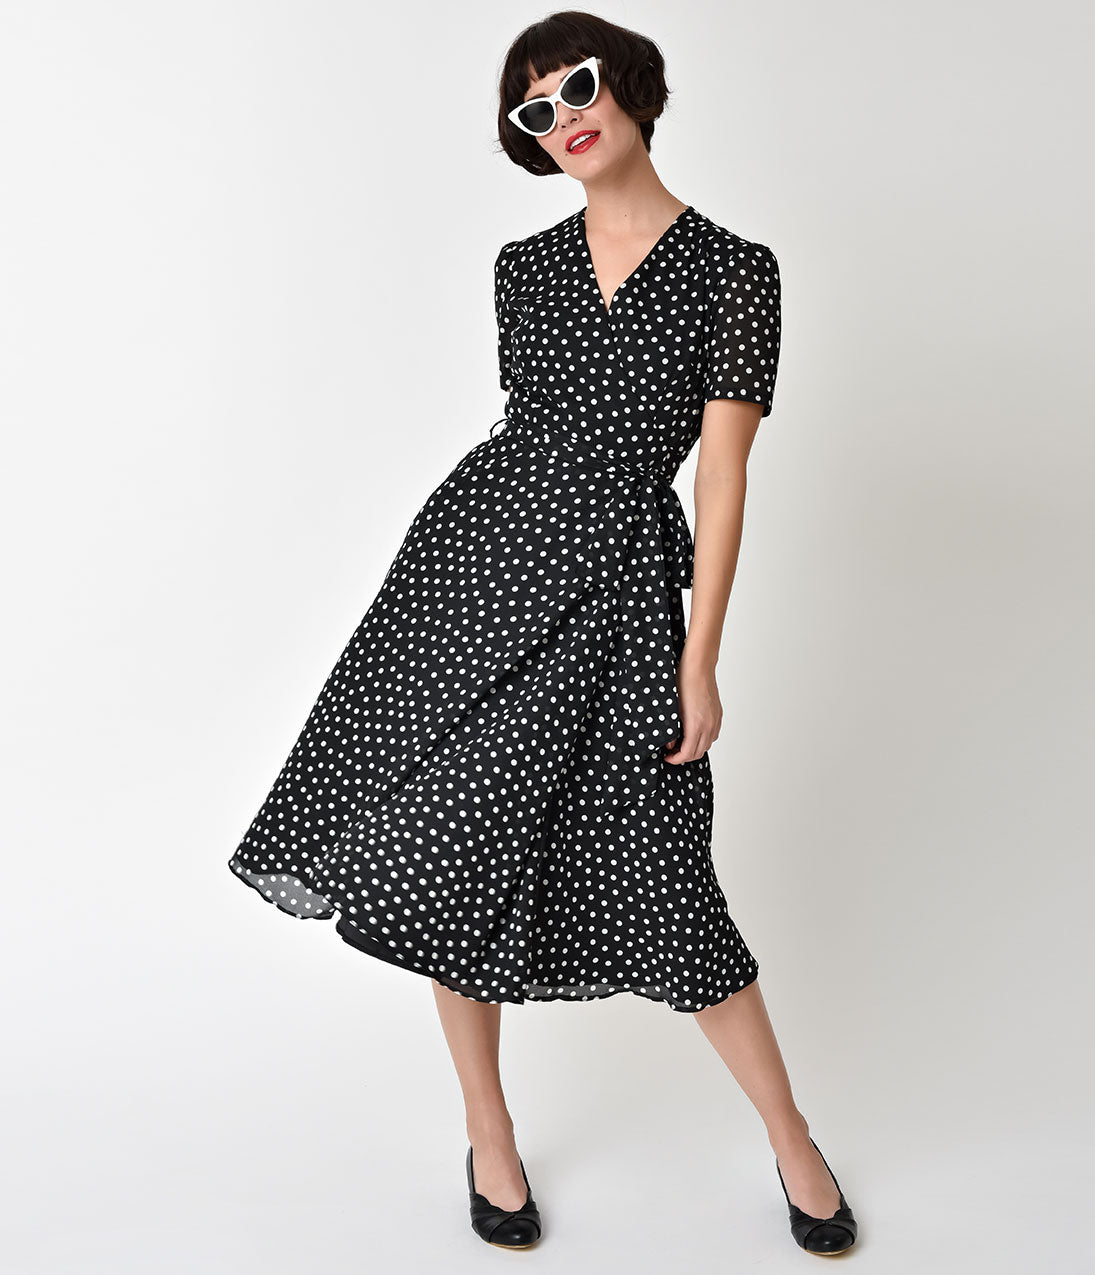 Polka Dot Dresses: 20s, 30s, 40s, 50s, 60s The Pretty Dress Company 1940S Black  Ivory Polka Dot Wrap Dress $147.00 AT vintagedancer.com